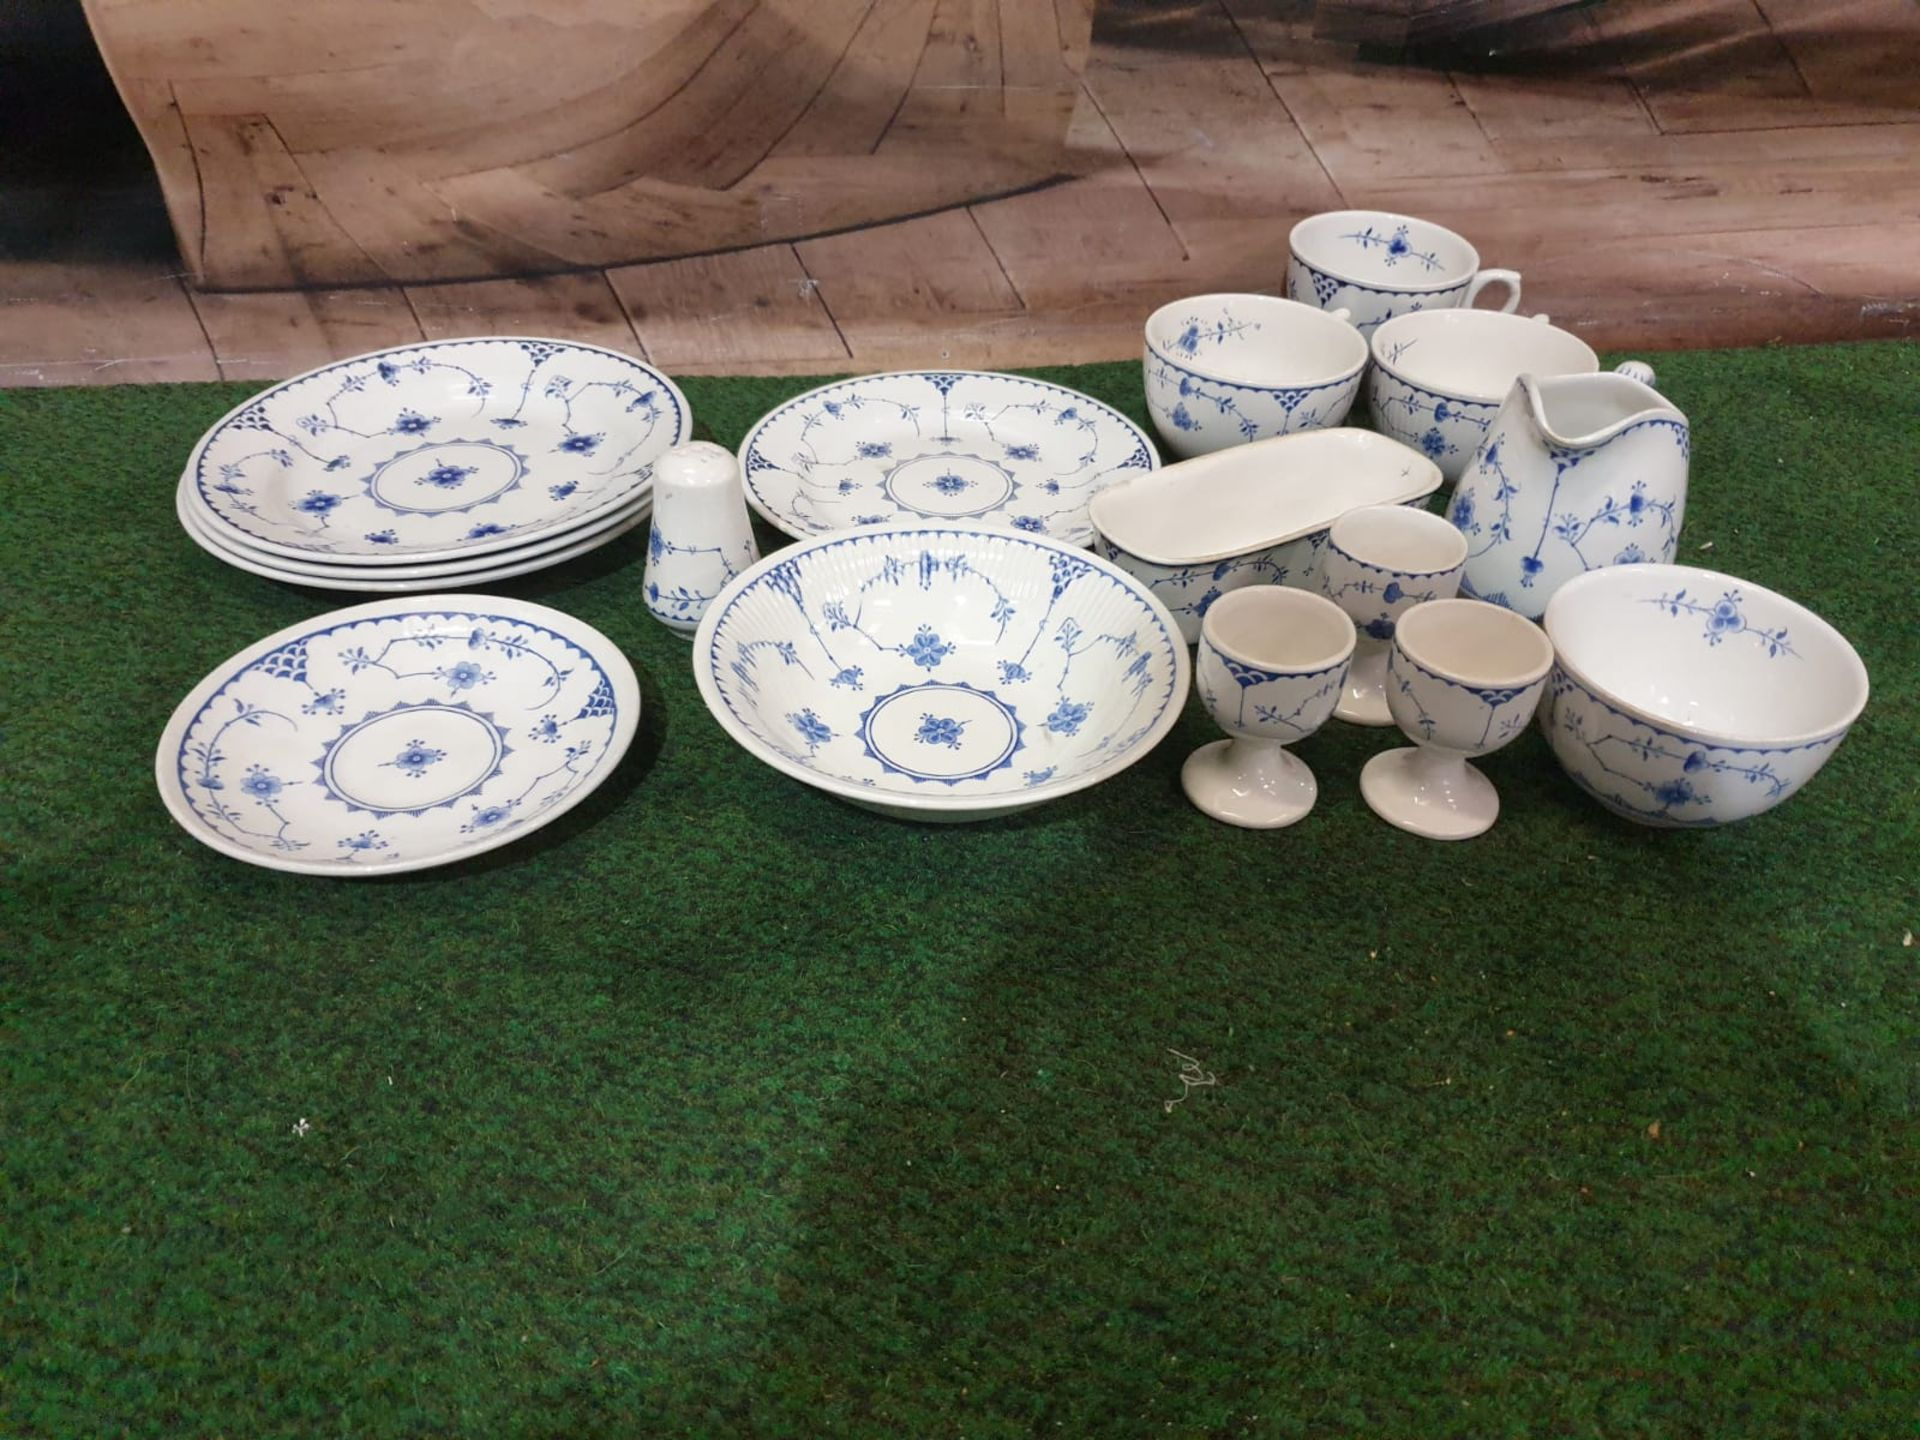 Furnivals Denmark – Blue partial tea service comprising of 3x plates 1x service plates 1x saucer - Image 3 of 3